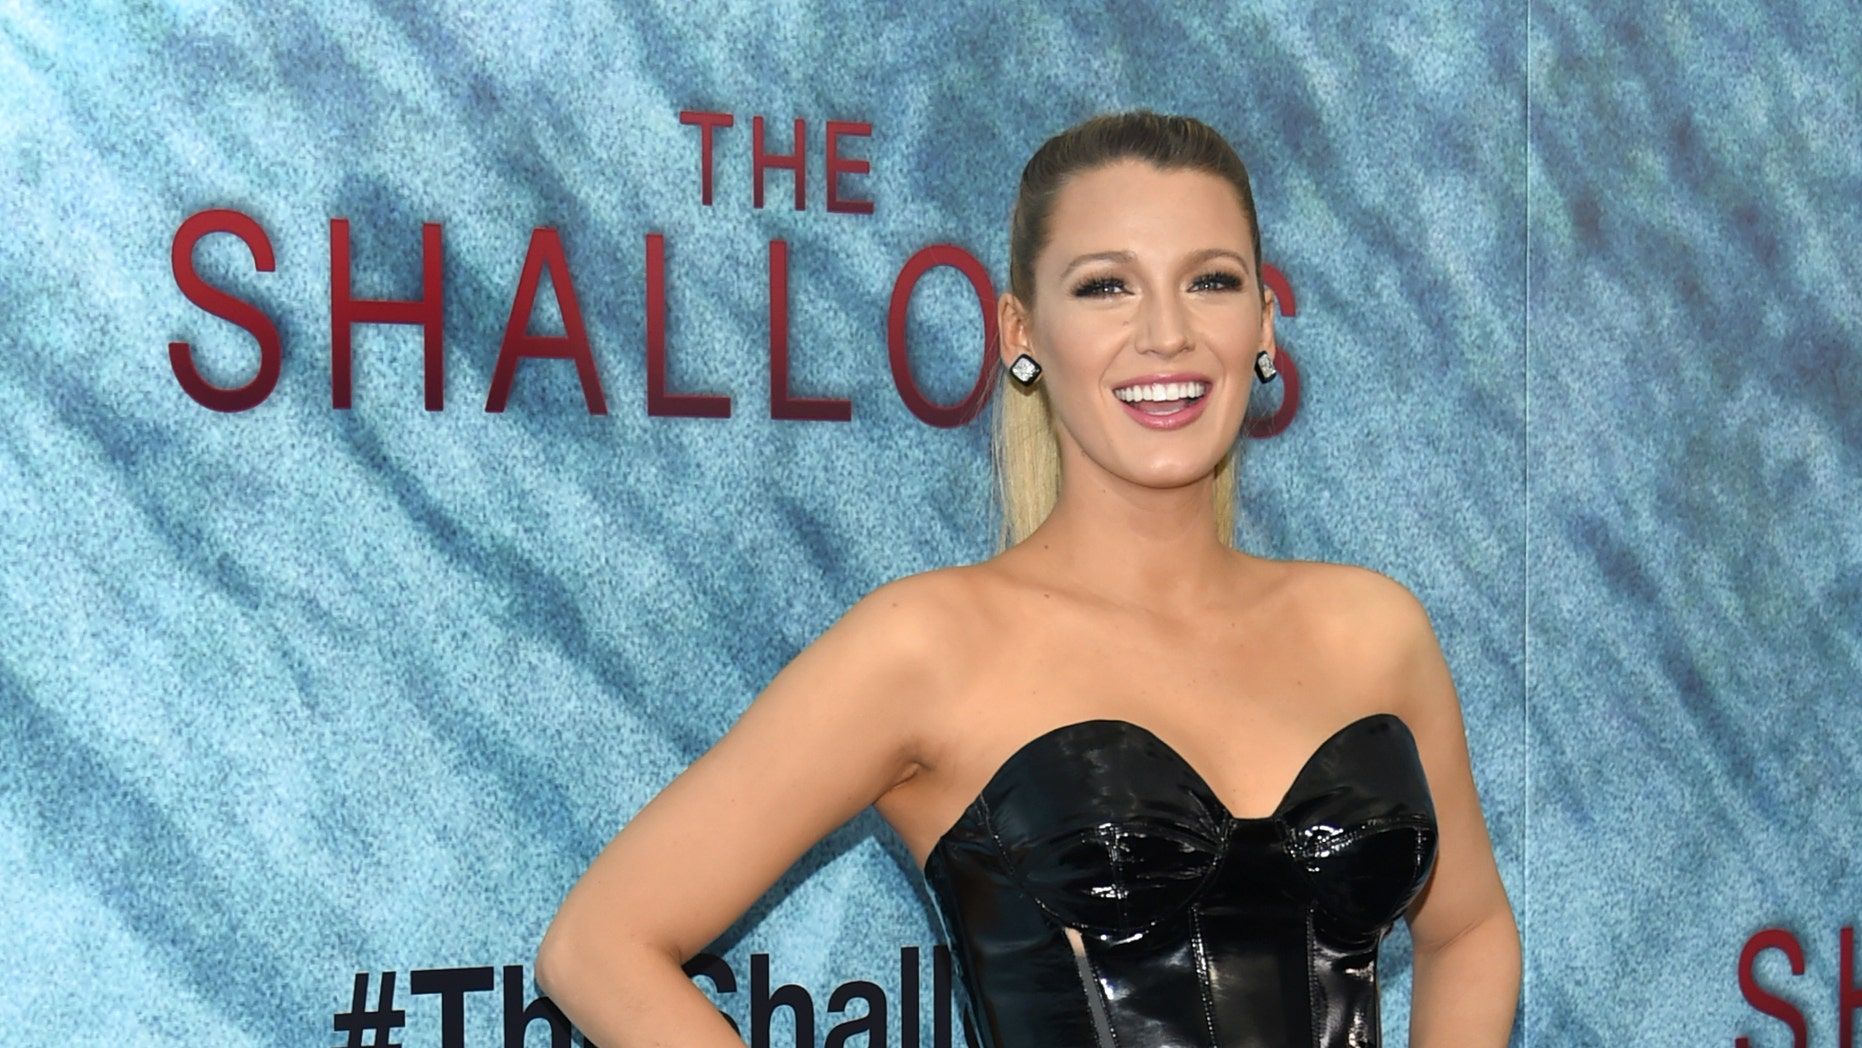 """Blake Lively attends the world premiere of """"The Shallows"""" at the AMC Loews Lincoln Square on Tuesday, June 21, 2016, in New York. (Photo by Evan Agostini/Invision/AP)"""